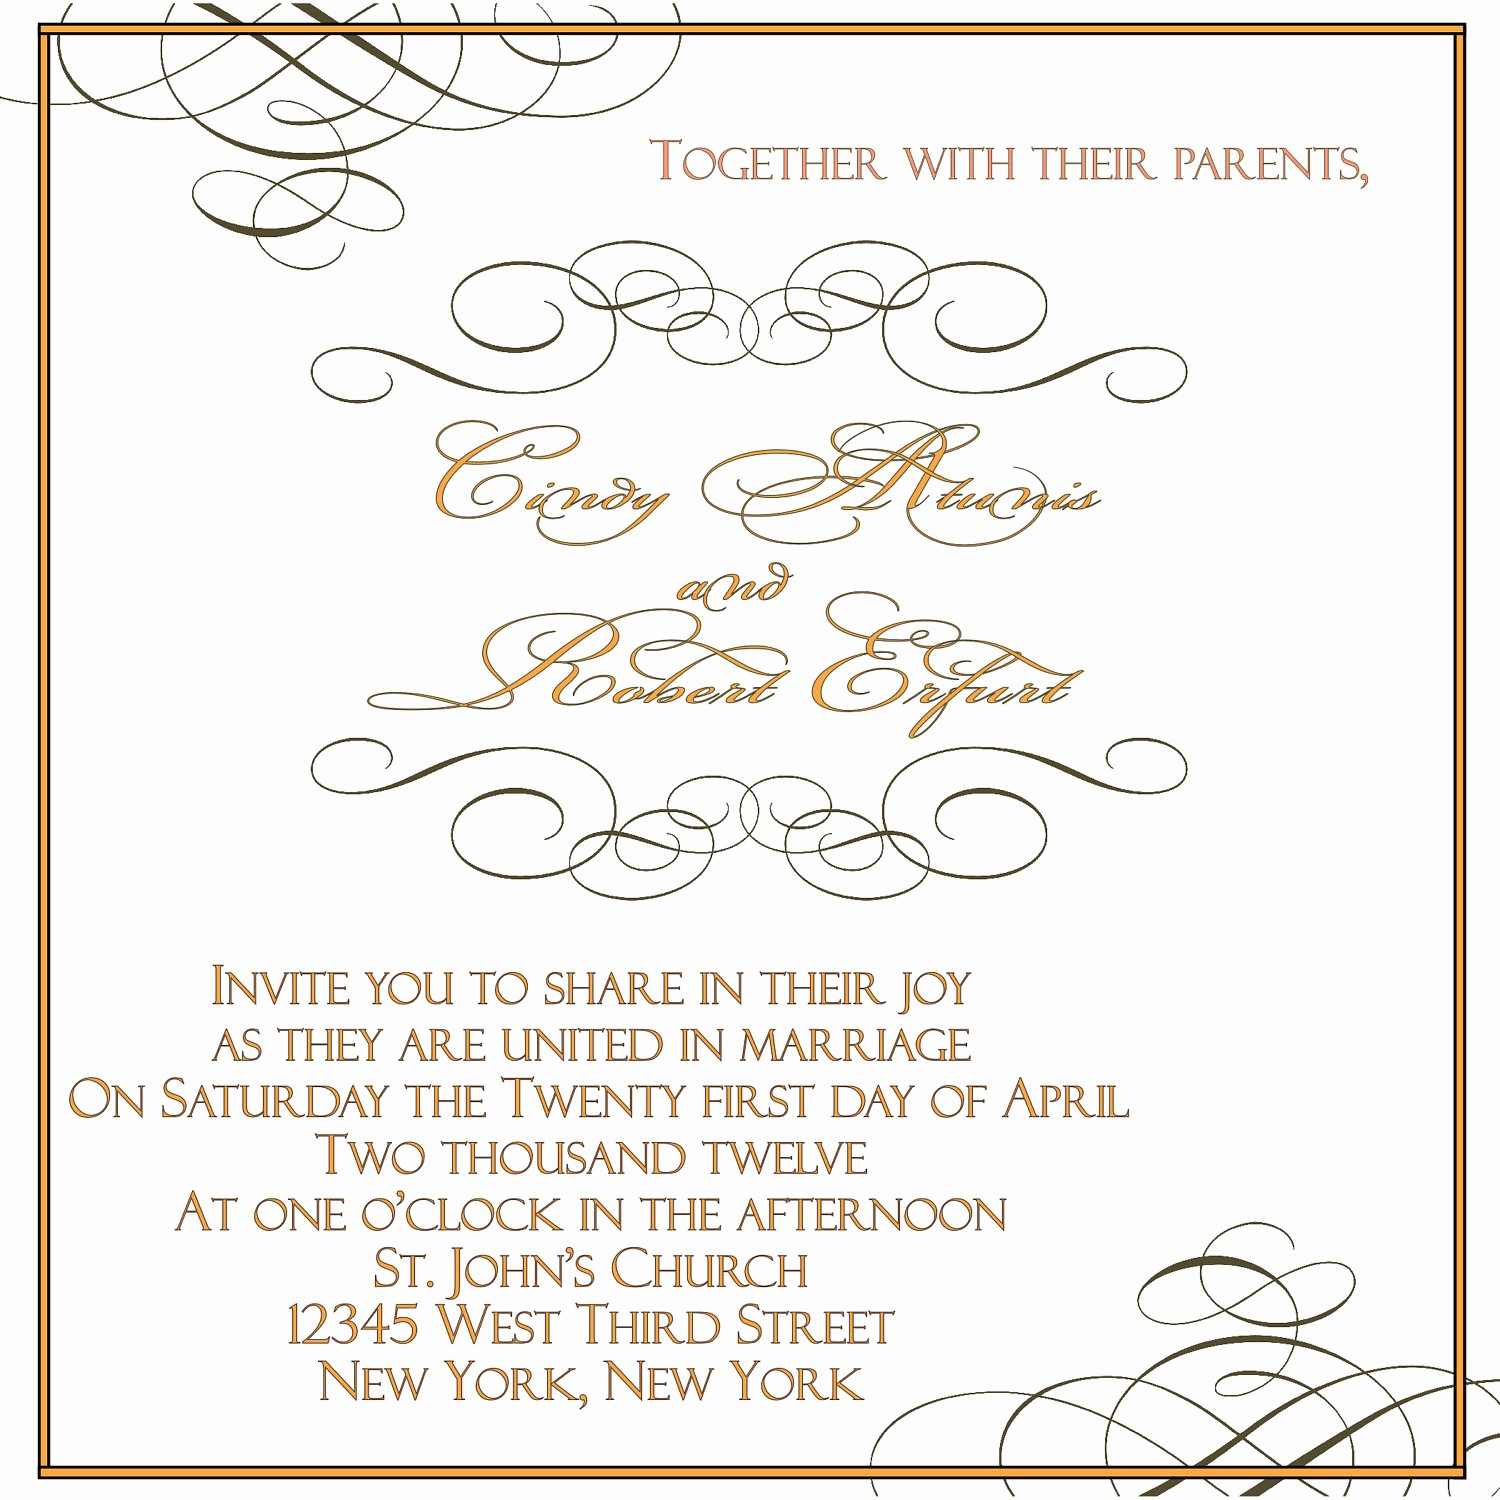 Wedding Invitation Template Word Free Inspirational Applying the Wedding Planning Templates